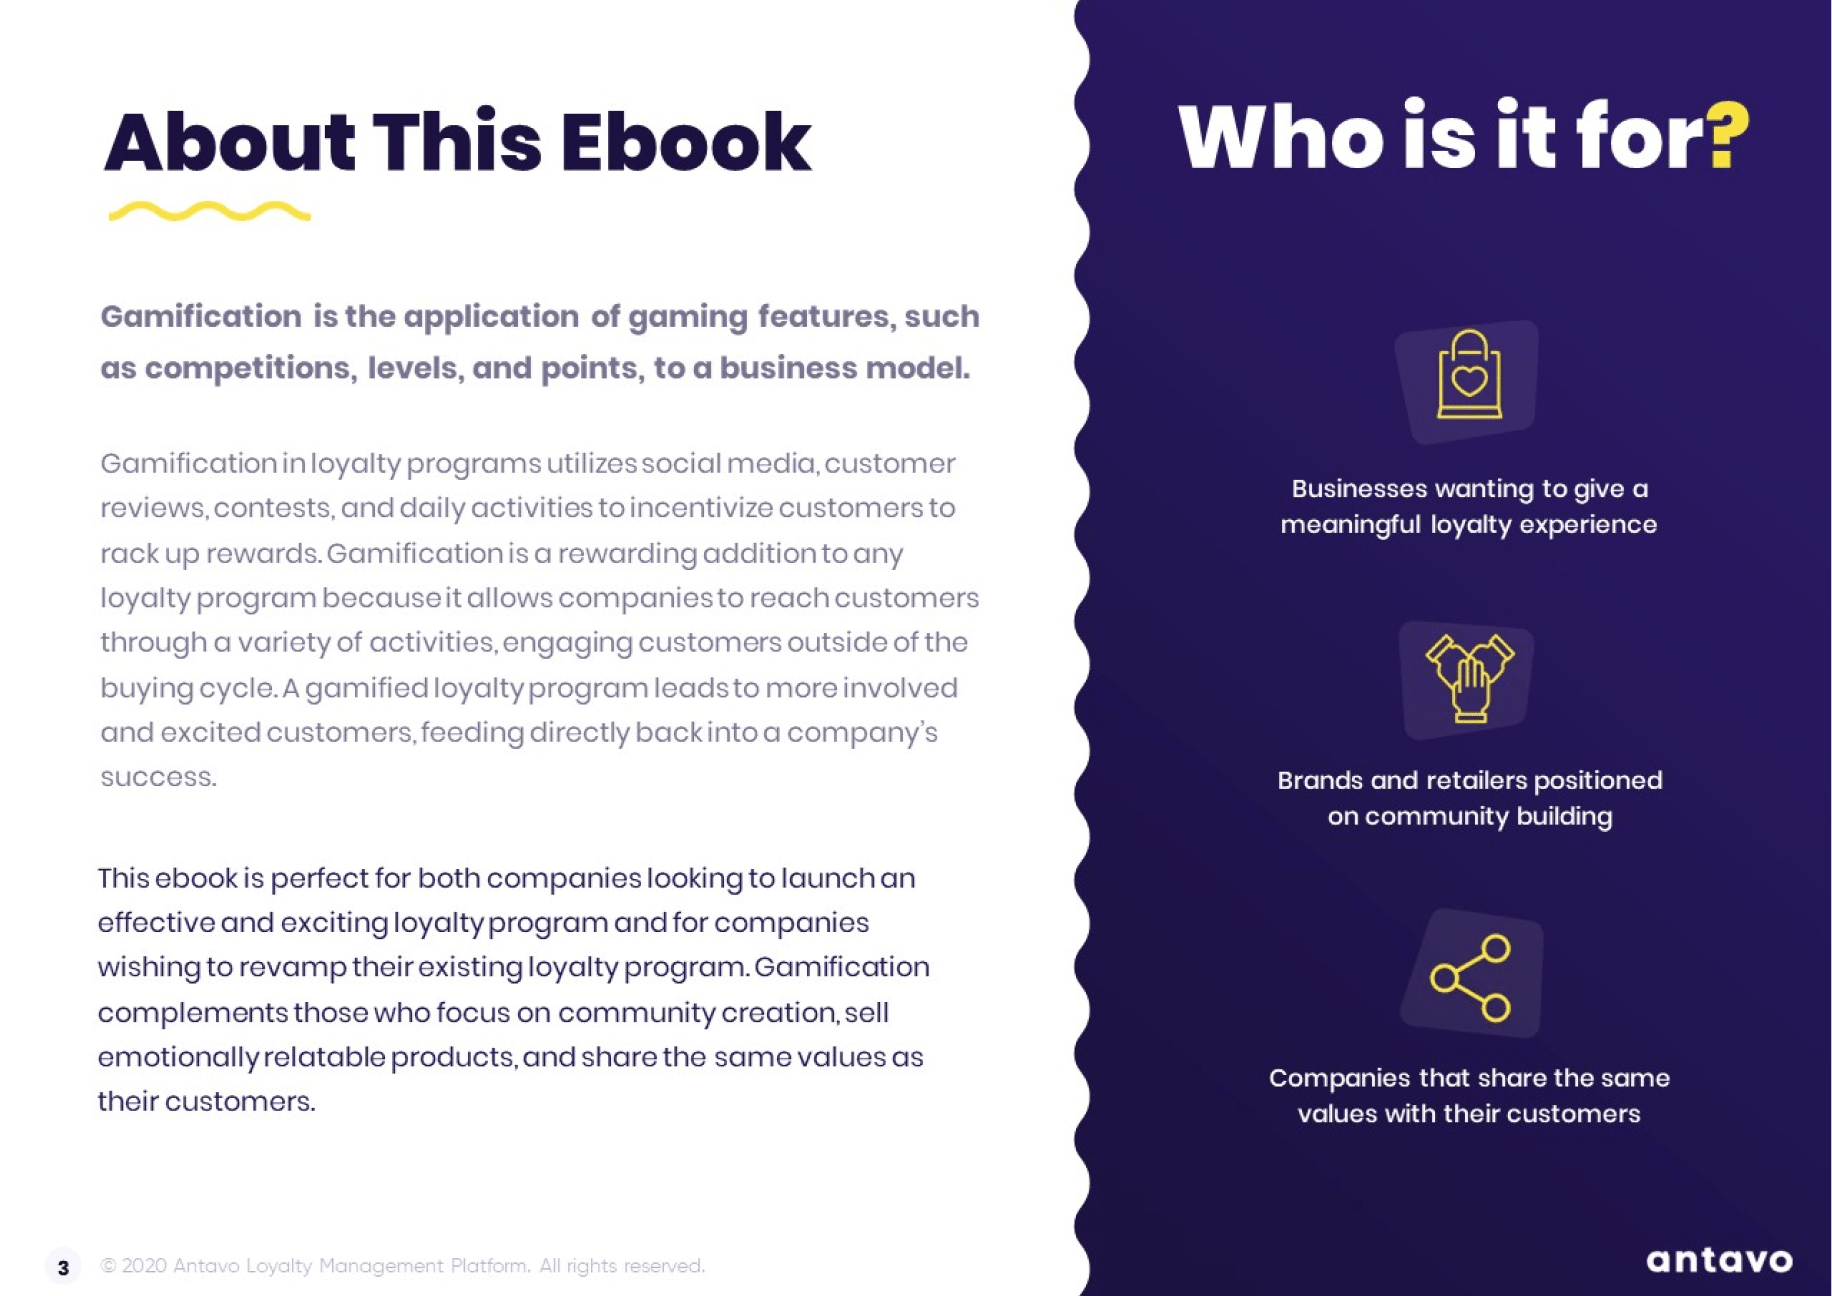 Take a look inside Antavo's Ebook: Best Practices for Gamification in Loyalty Programs.